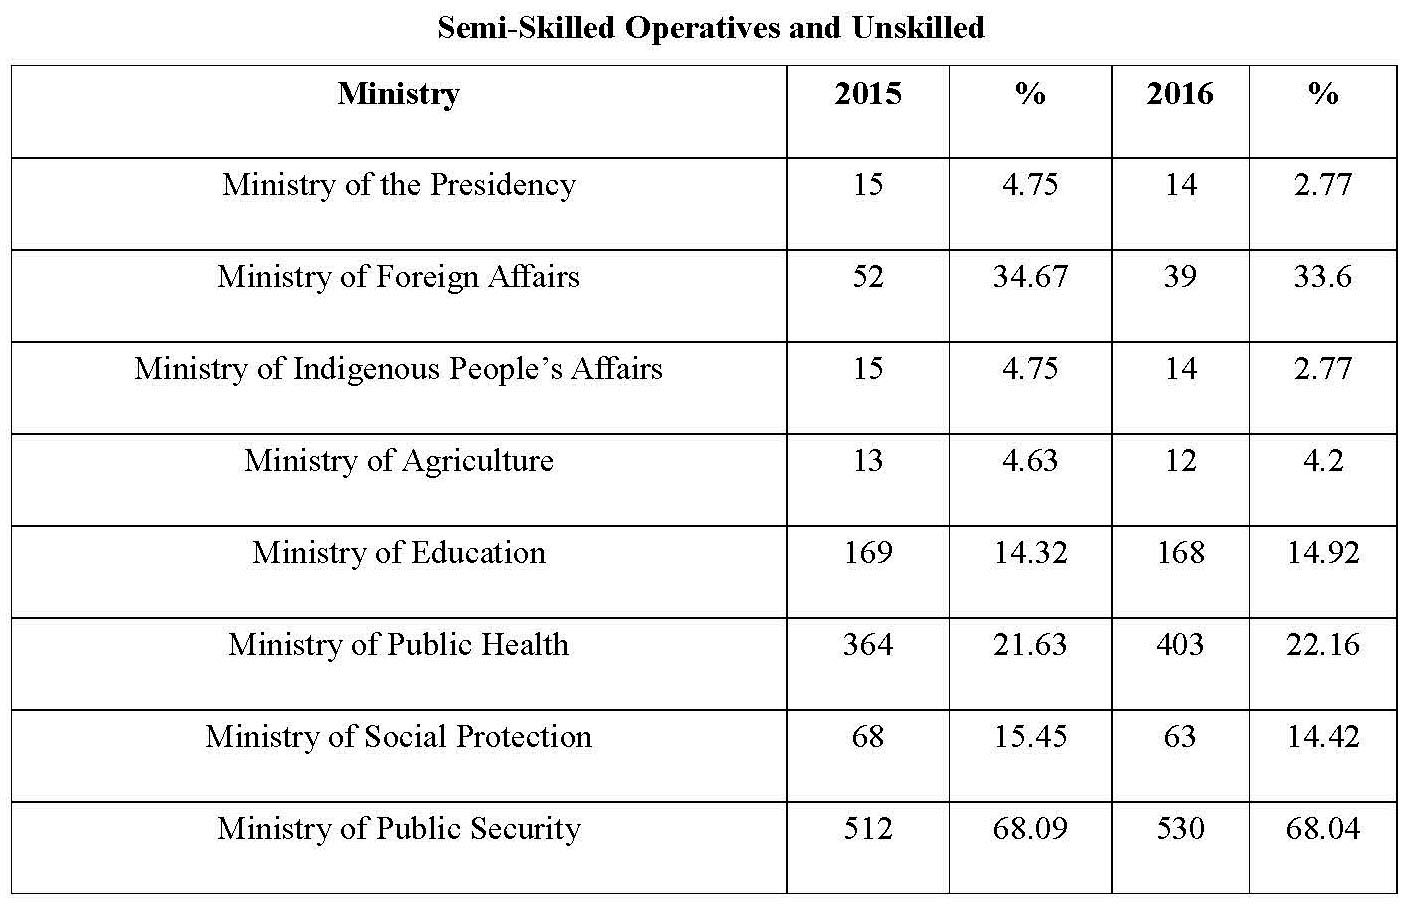 High percentage of semi-skilled, unskilled workers in ...